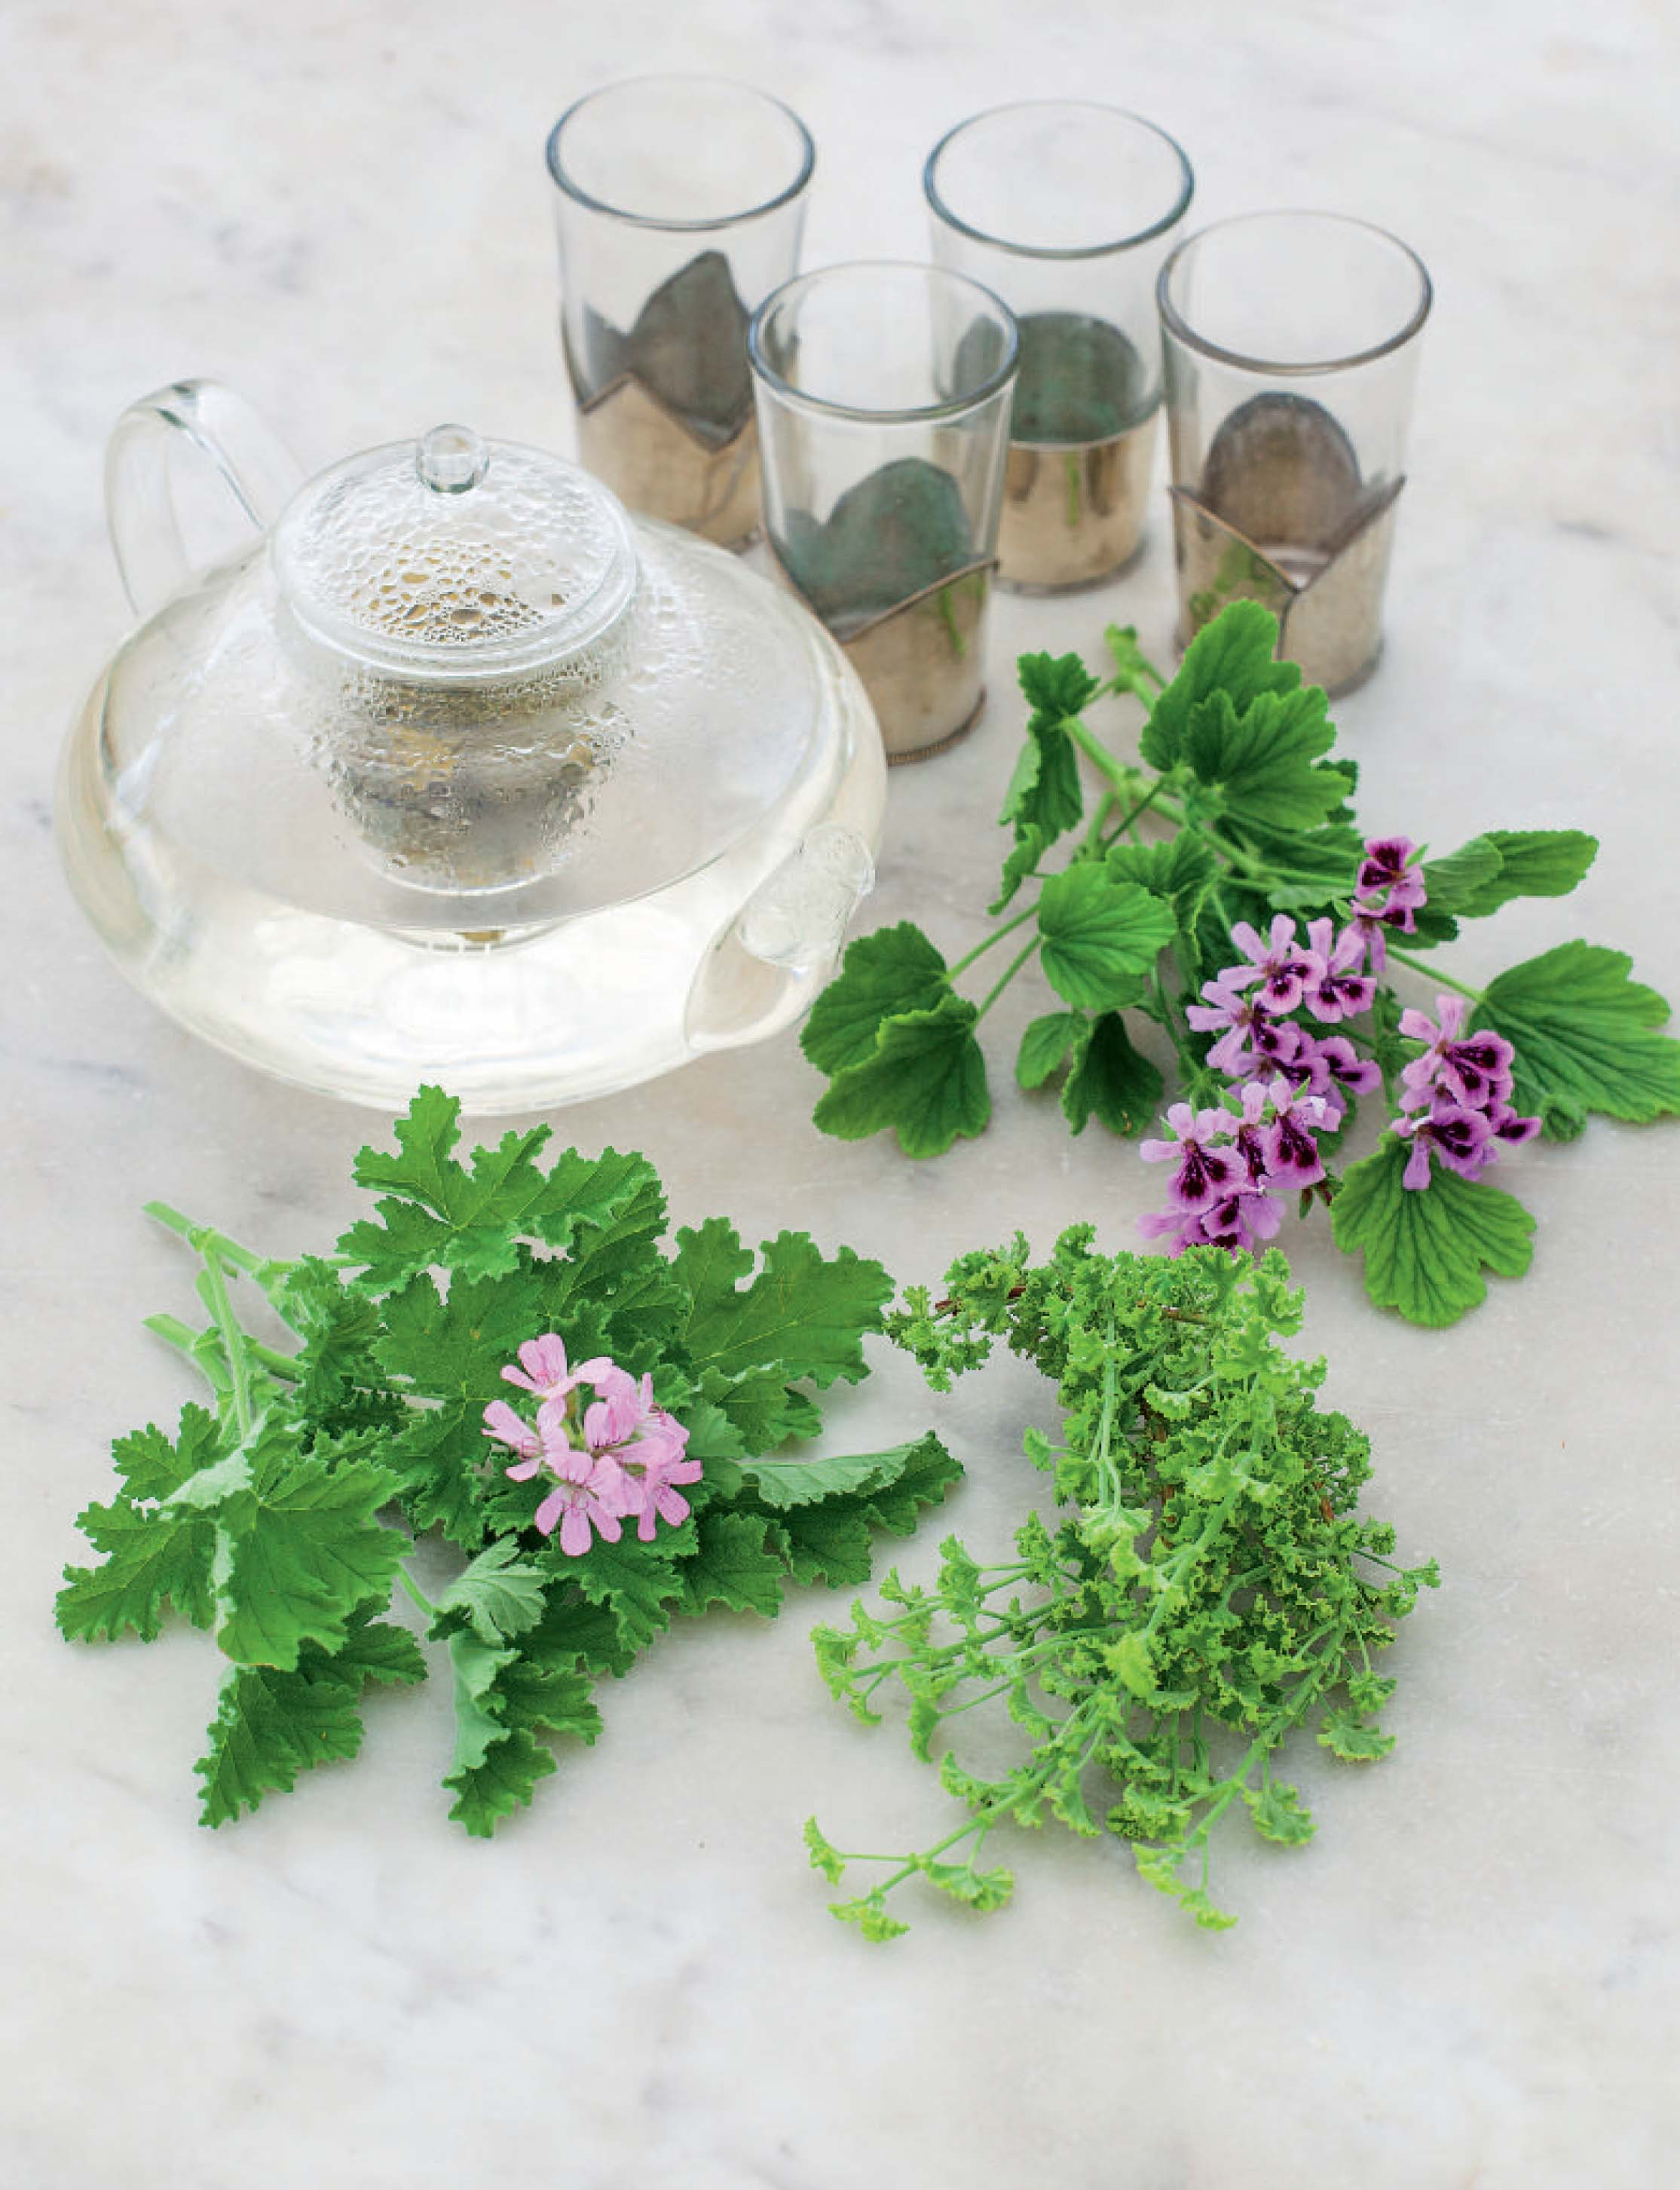 Rose geranium and lemon tea